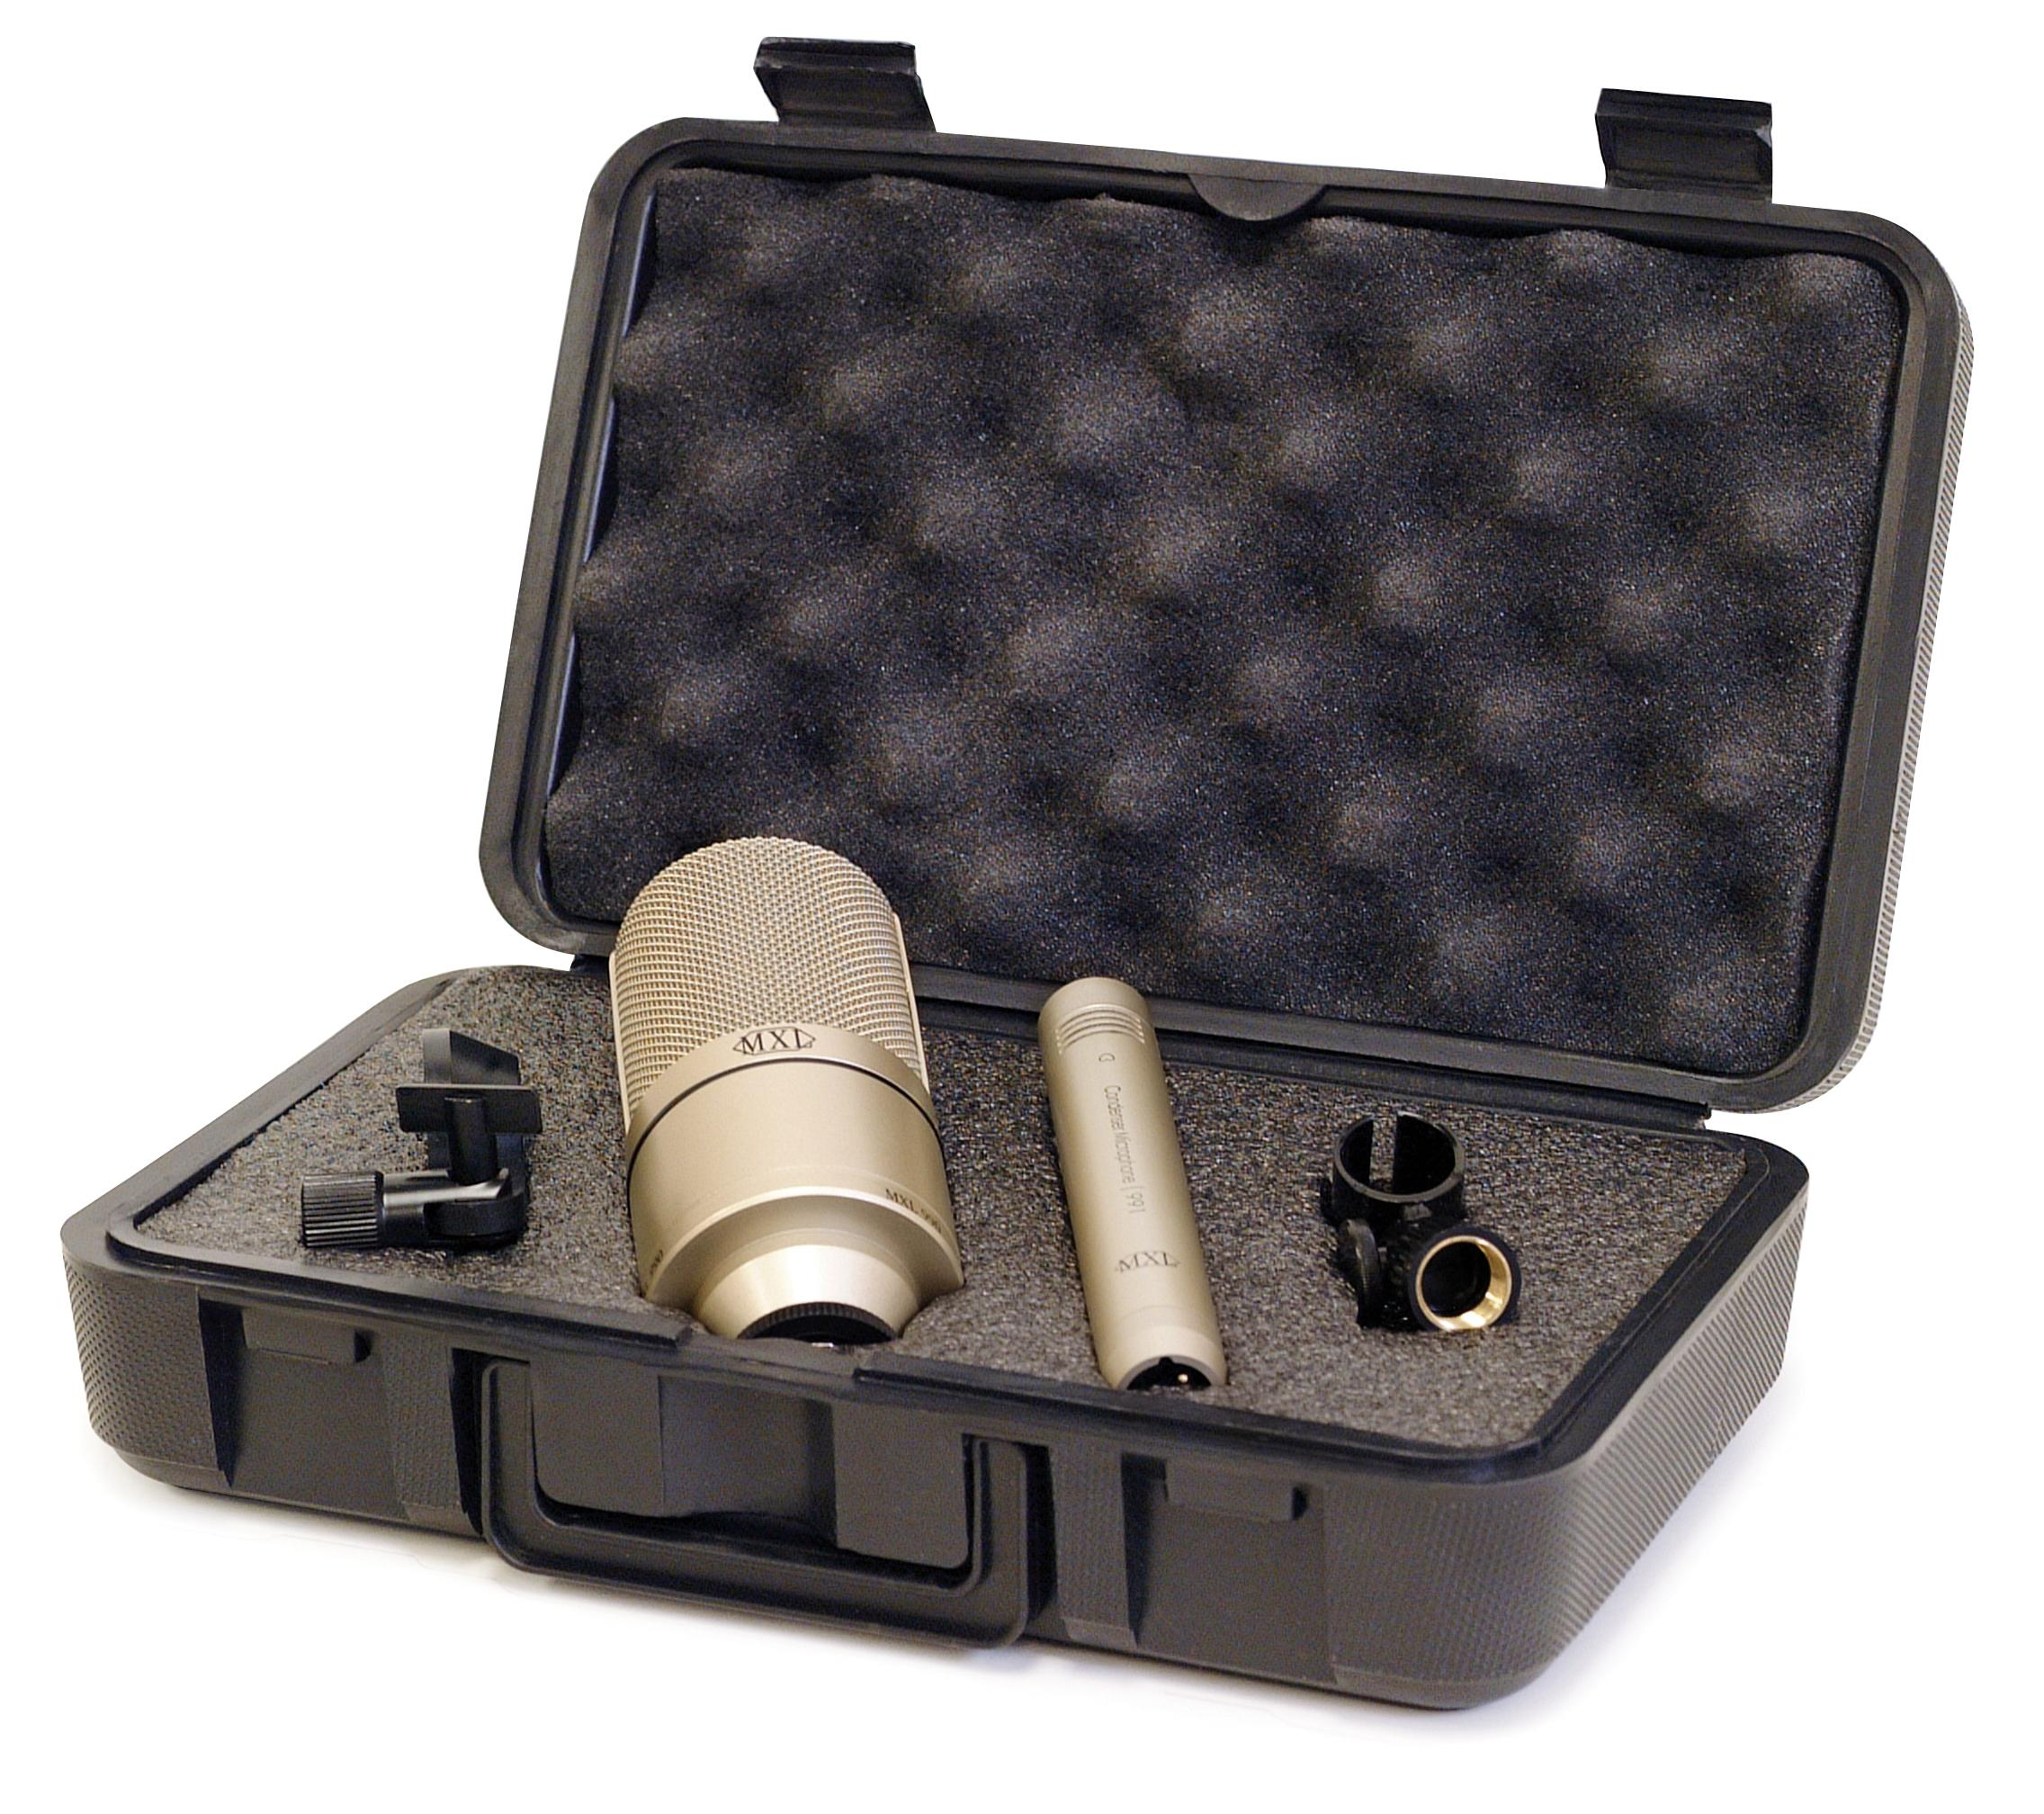 mxl 990 991 recording condenser microphone package musical instruments. Black Bedroom Furniture Sets. Home Design Ideas